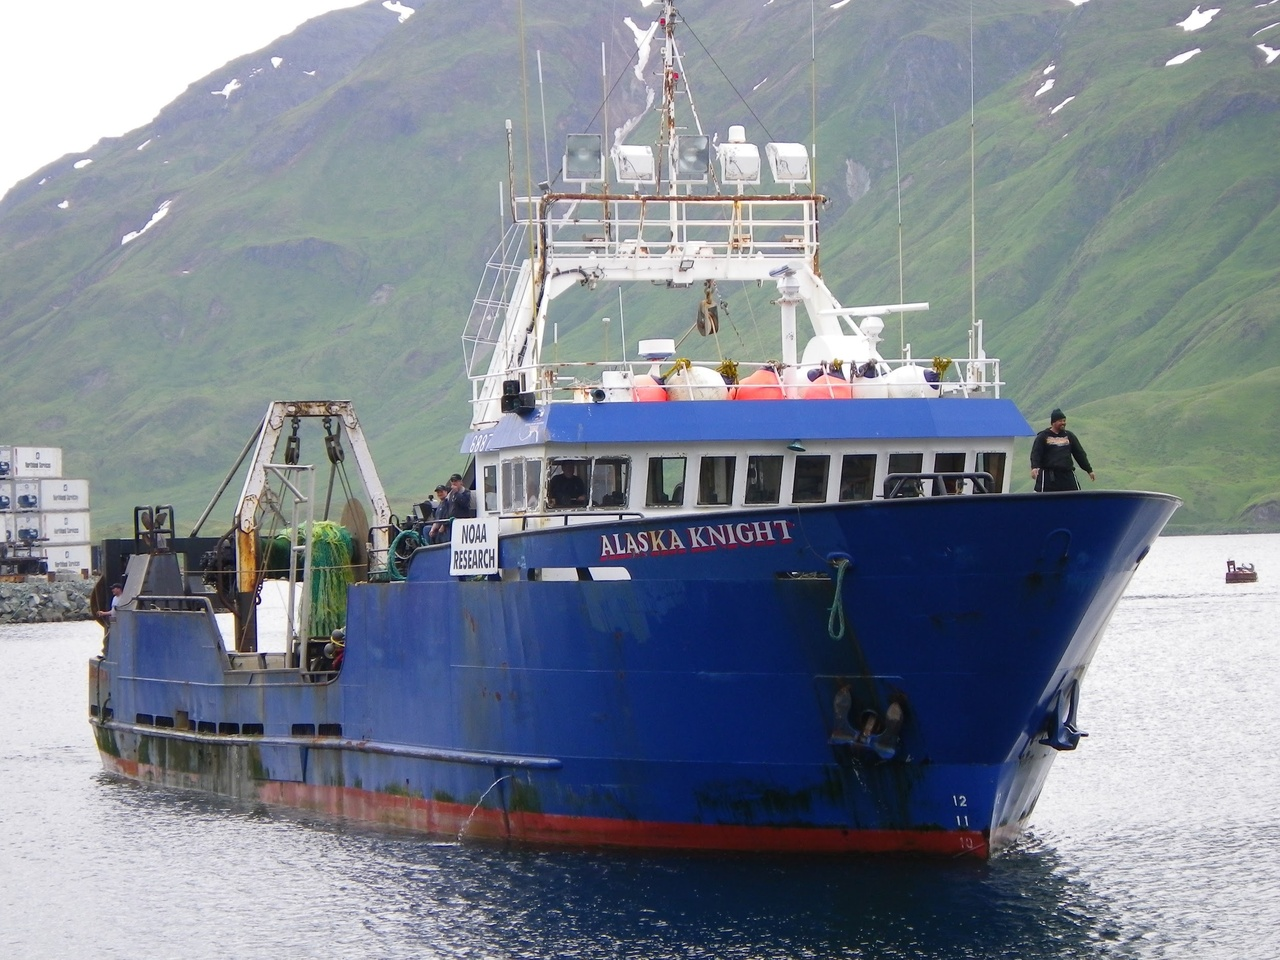 Photo taken during Leg 2 of the 2010 survey of the Eastern Bering Sea shelf, conducted 28 June - 19 July 2010 aboard the F/V Alaska Knight. Robert R. Lauth, Field Party Chief.